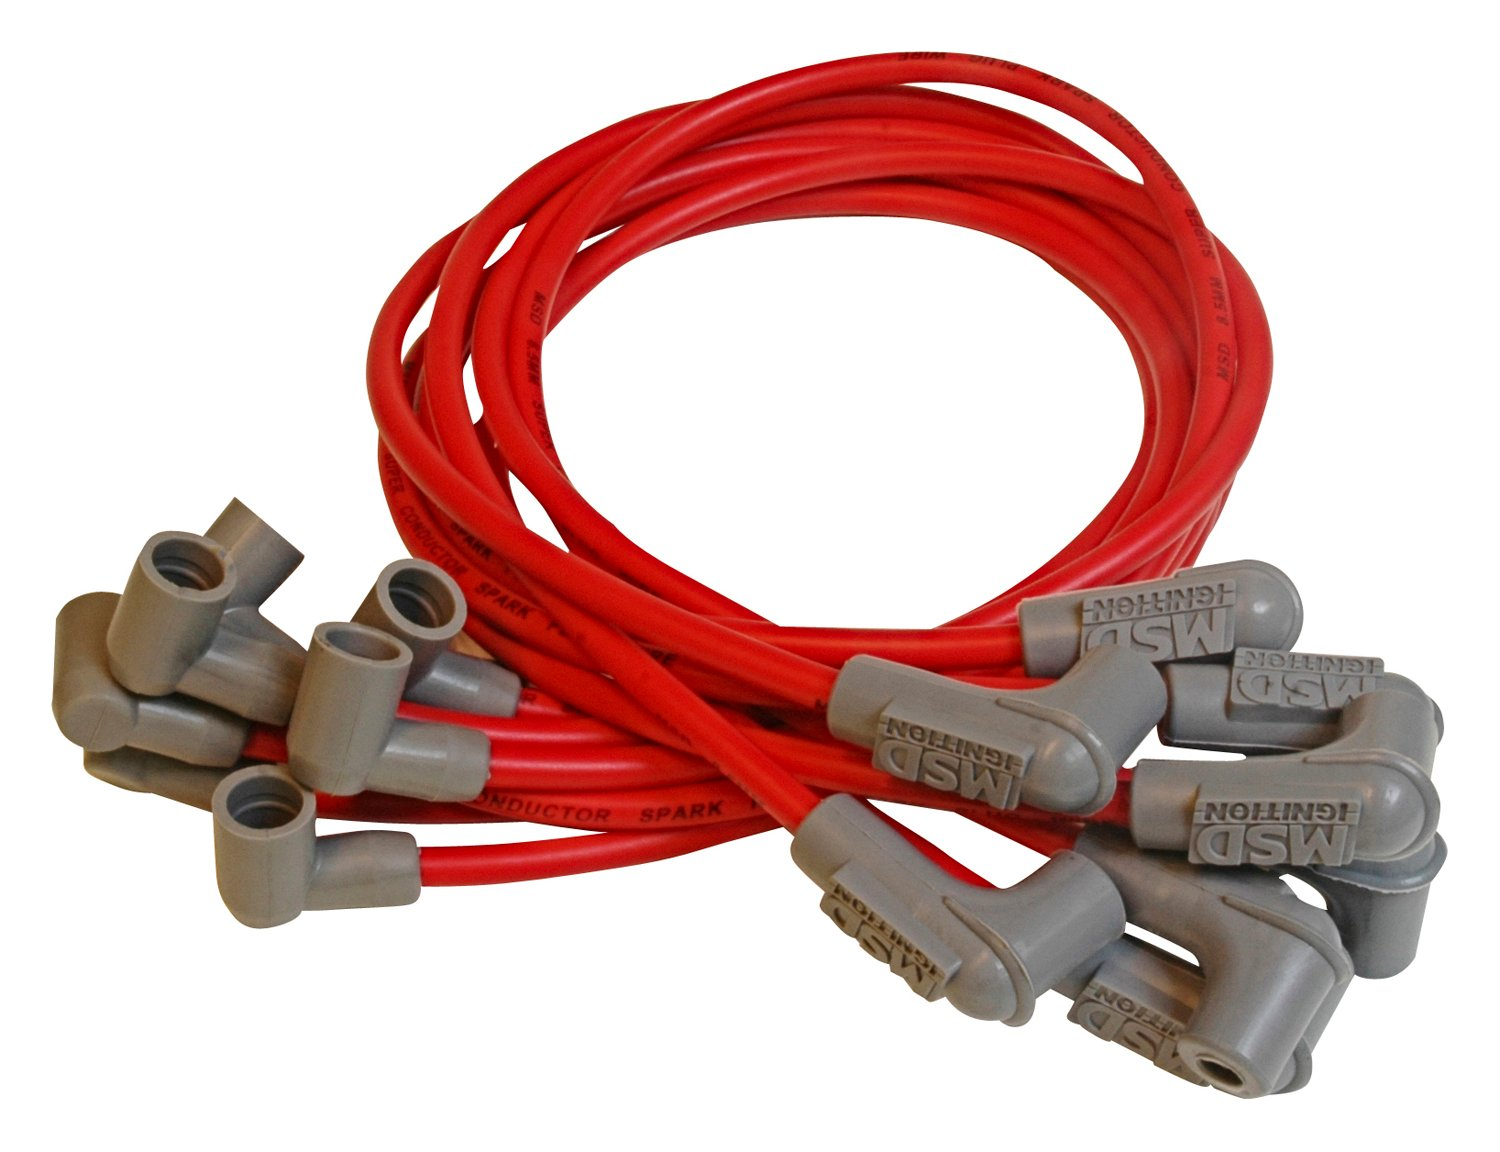 31659 - Super Conductor Spark Plug Wire Set ,Small Block Chevy, Socket Dist. Cap Image